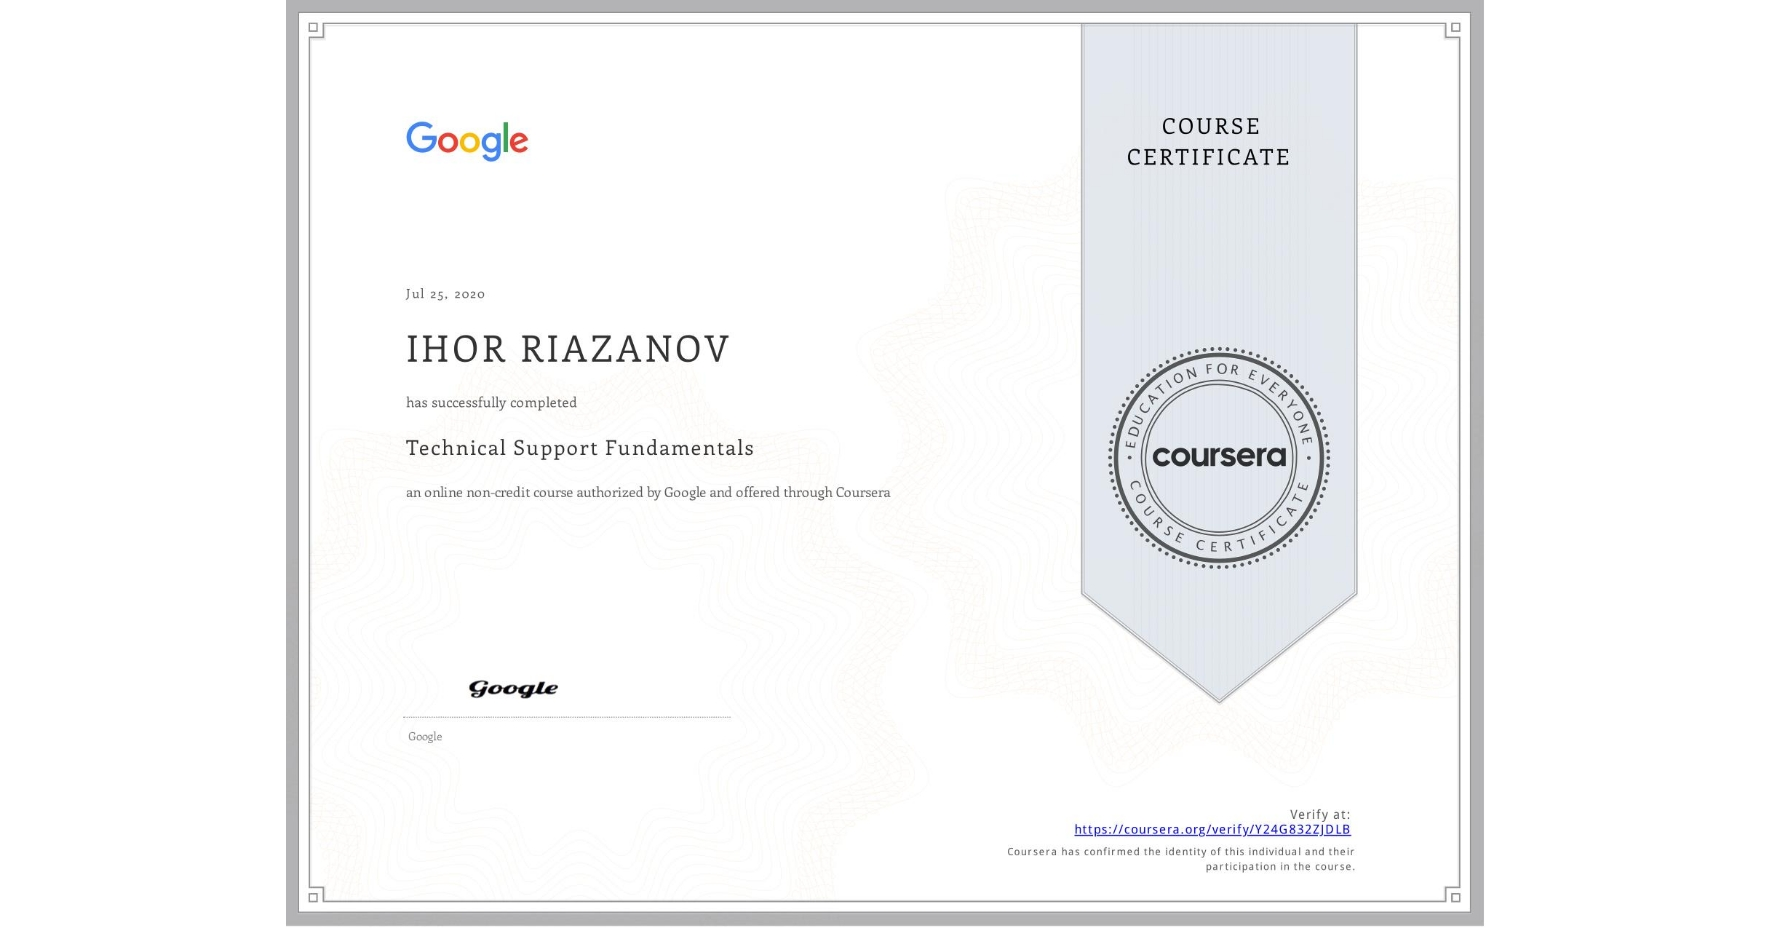 View certificate for IHOR RIAZANOV, Technical Support Fundamentals, an online non-credit course authorized by Google and offered through Coursera